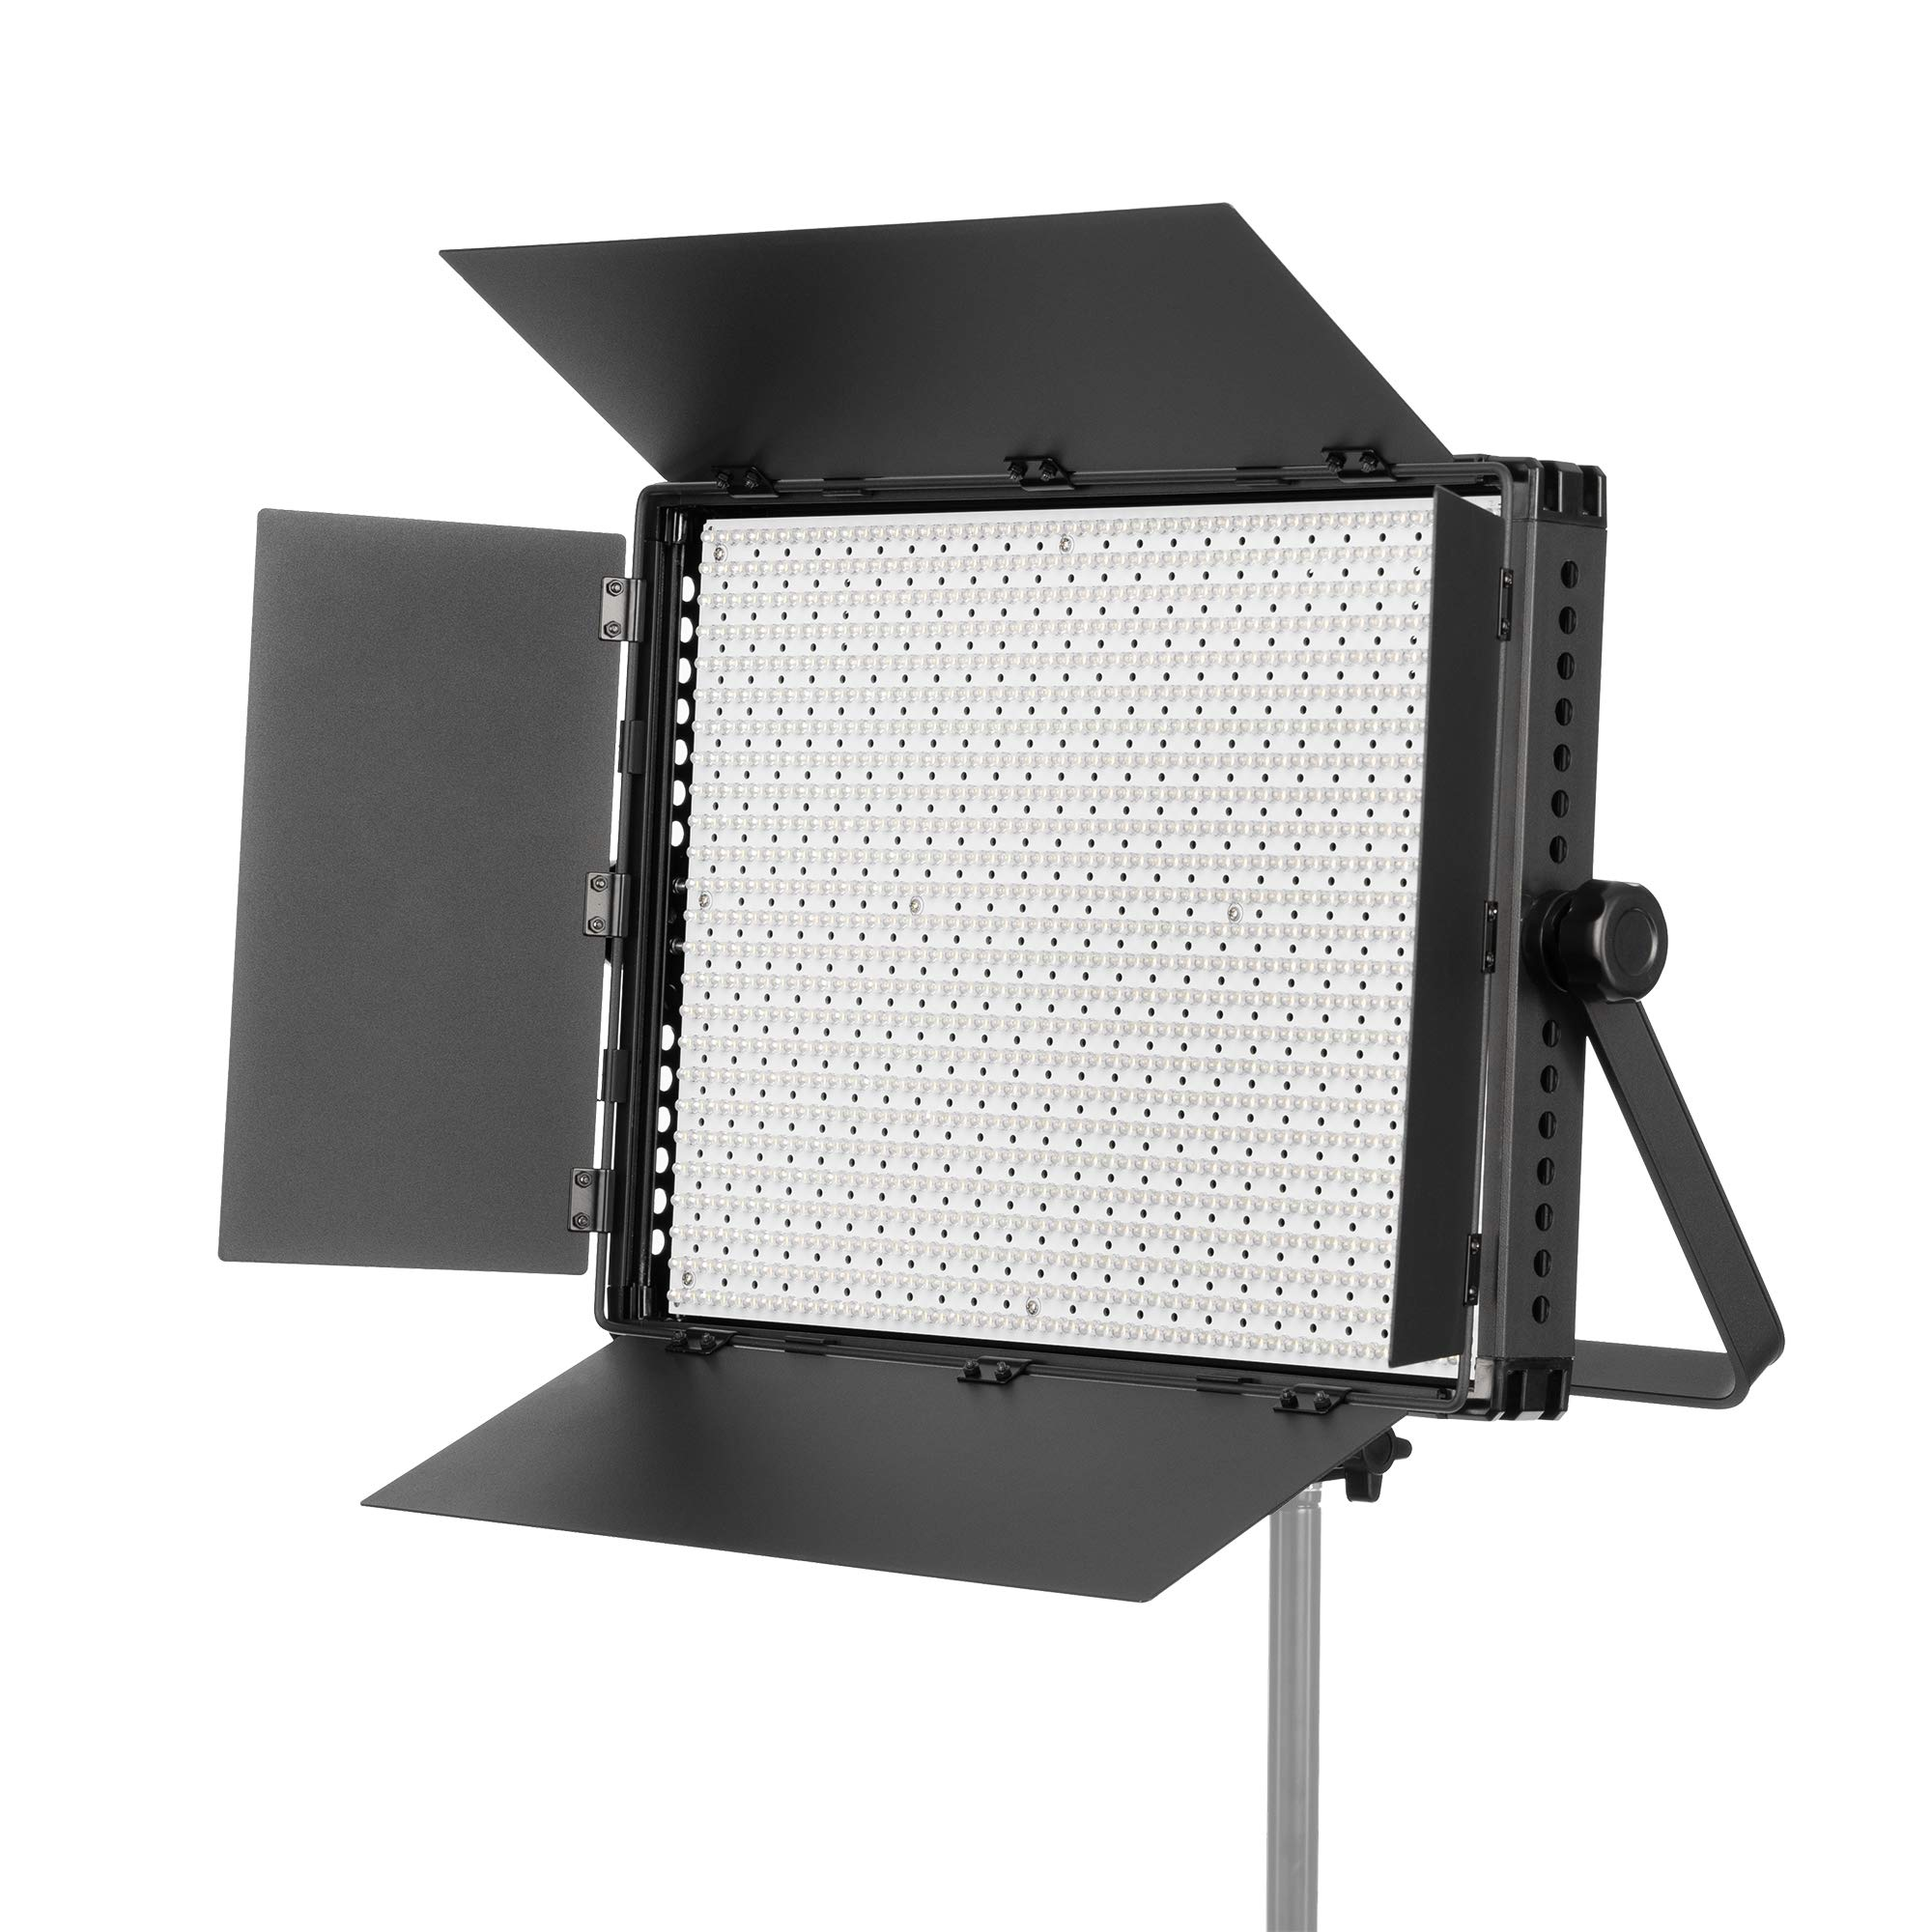 Fovitec - 900 LED Bi-Color Panel for Video and Photo with Barndoors, DMX, V-Lock Mount, and Case